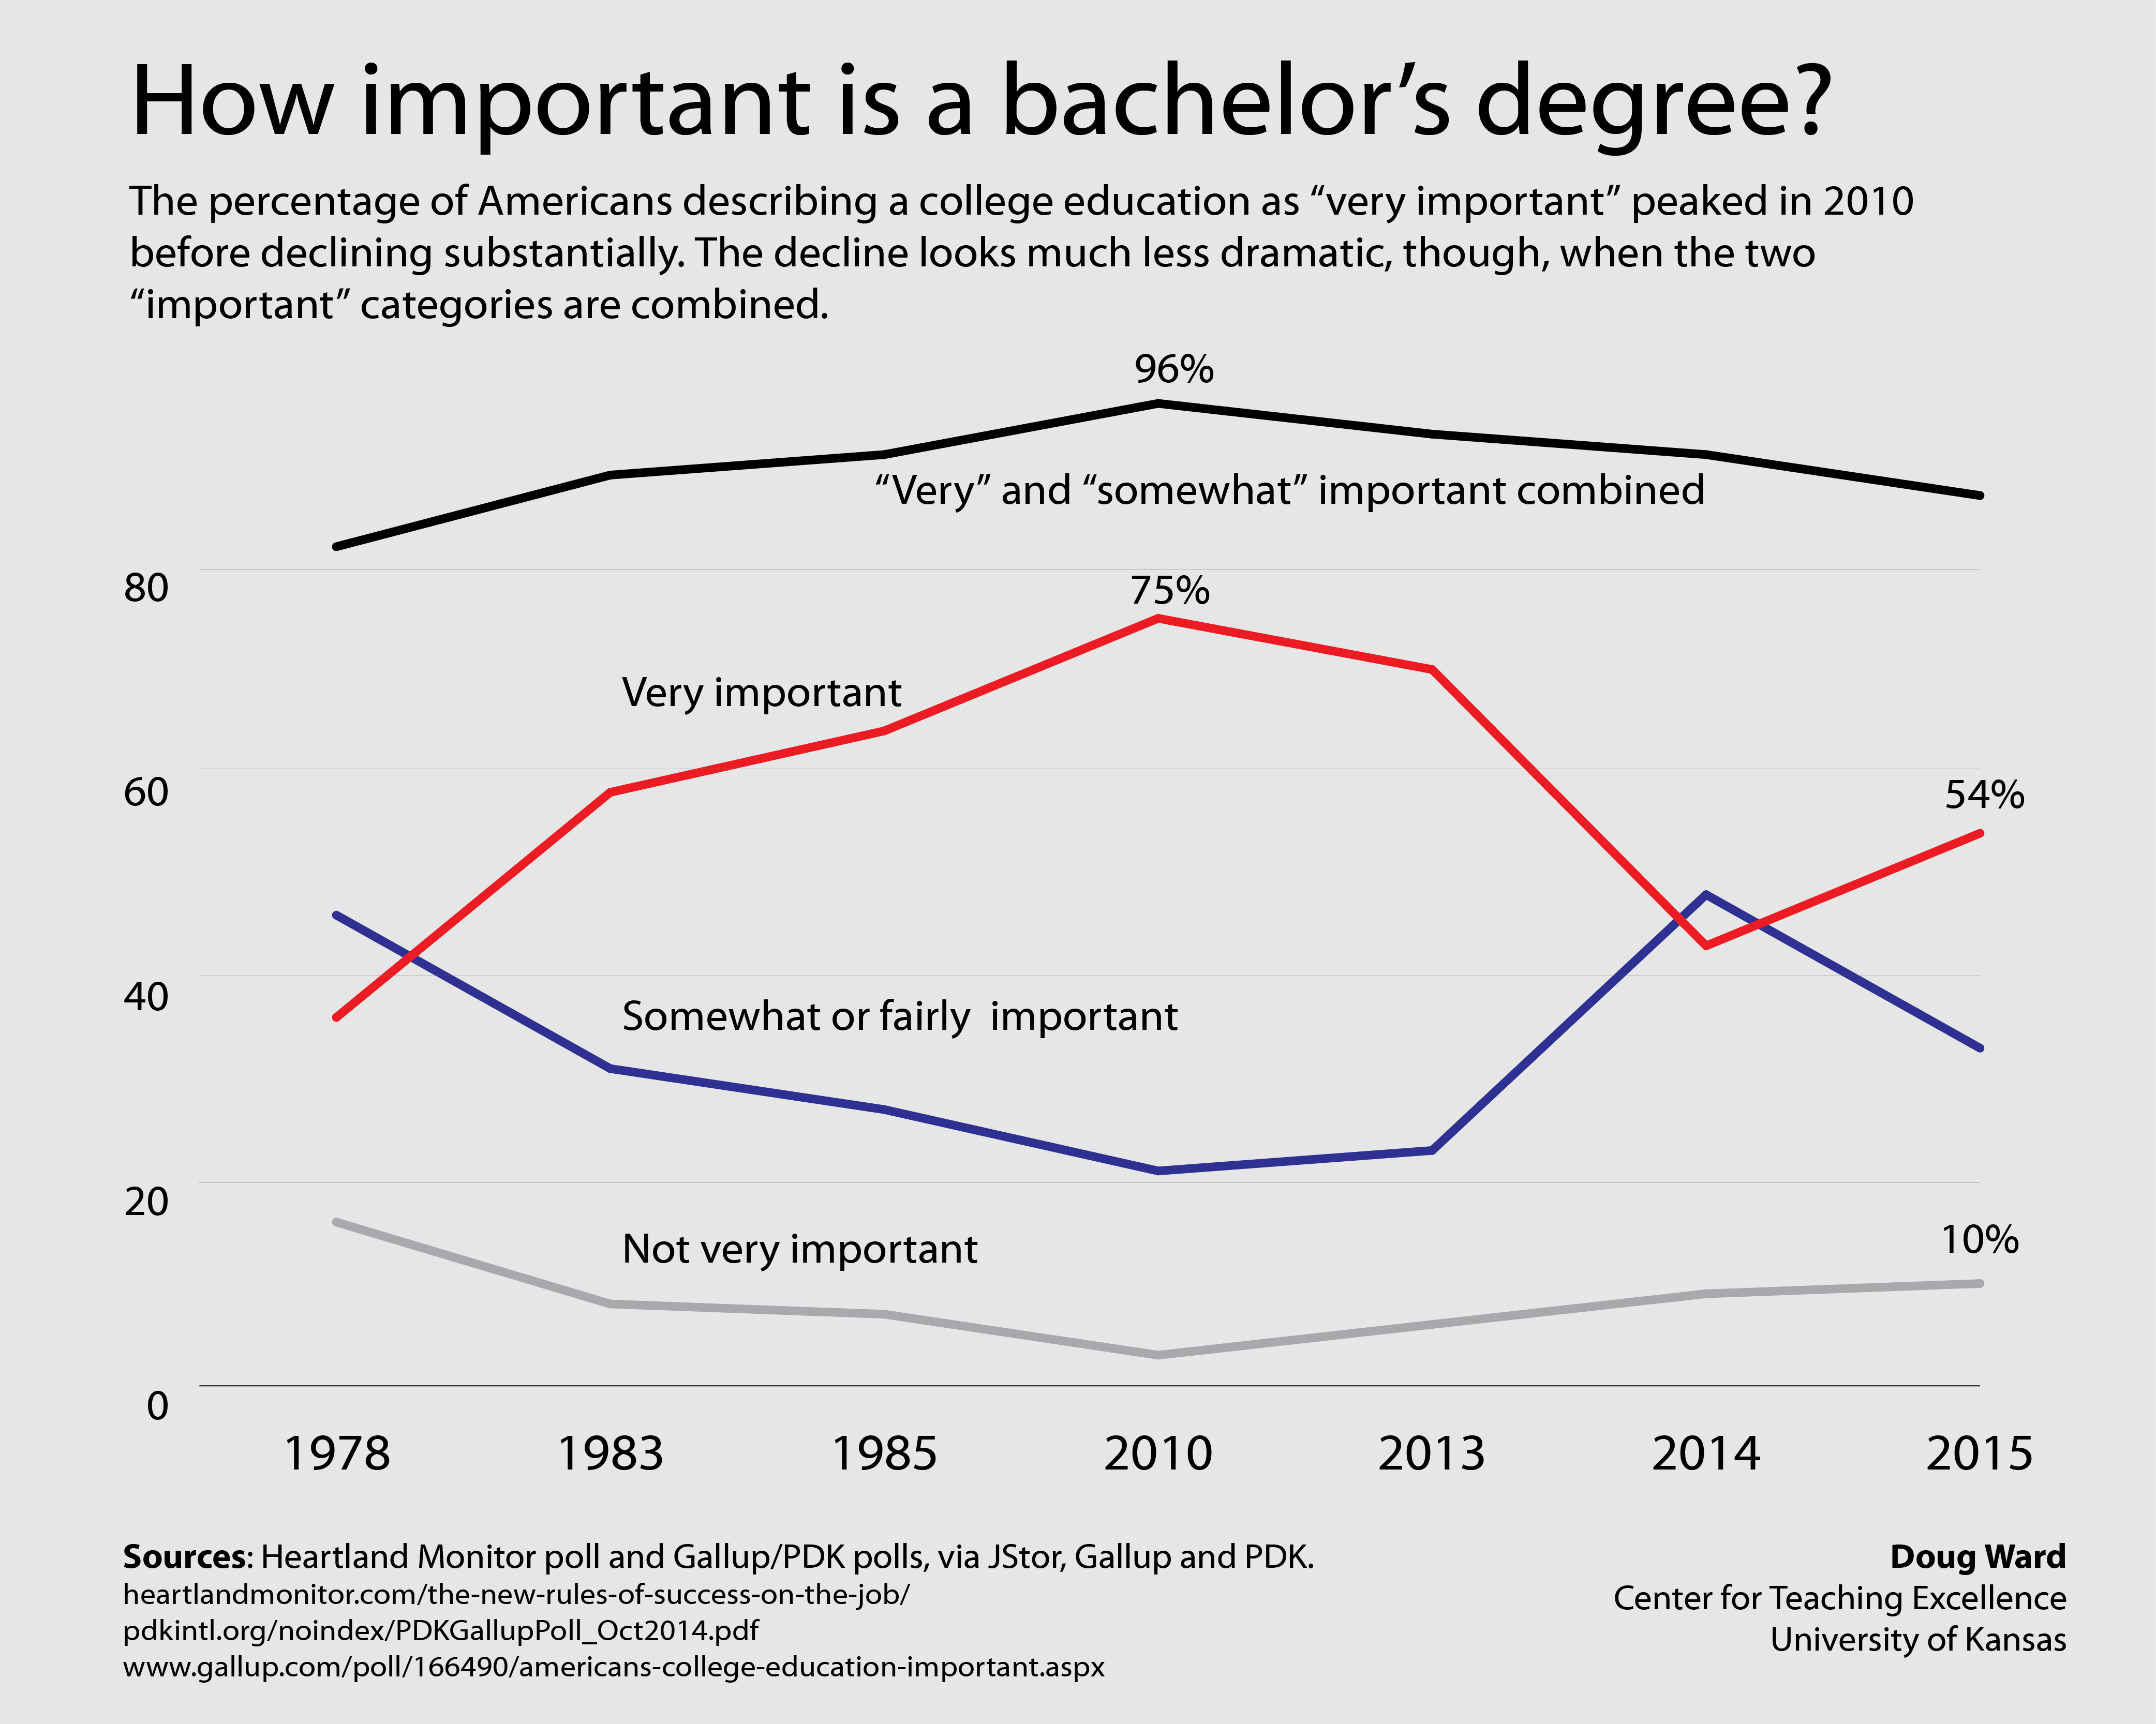 """Graph showing poll responses about the importance of college from 1978 through 2015. The percentage of Americans describing a college education as """"very important"""" peaked in 2010 before declining substantially. The decline looks much less dramatic, though, when the two """"important"""" categories are combined."""